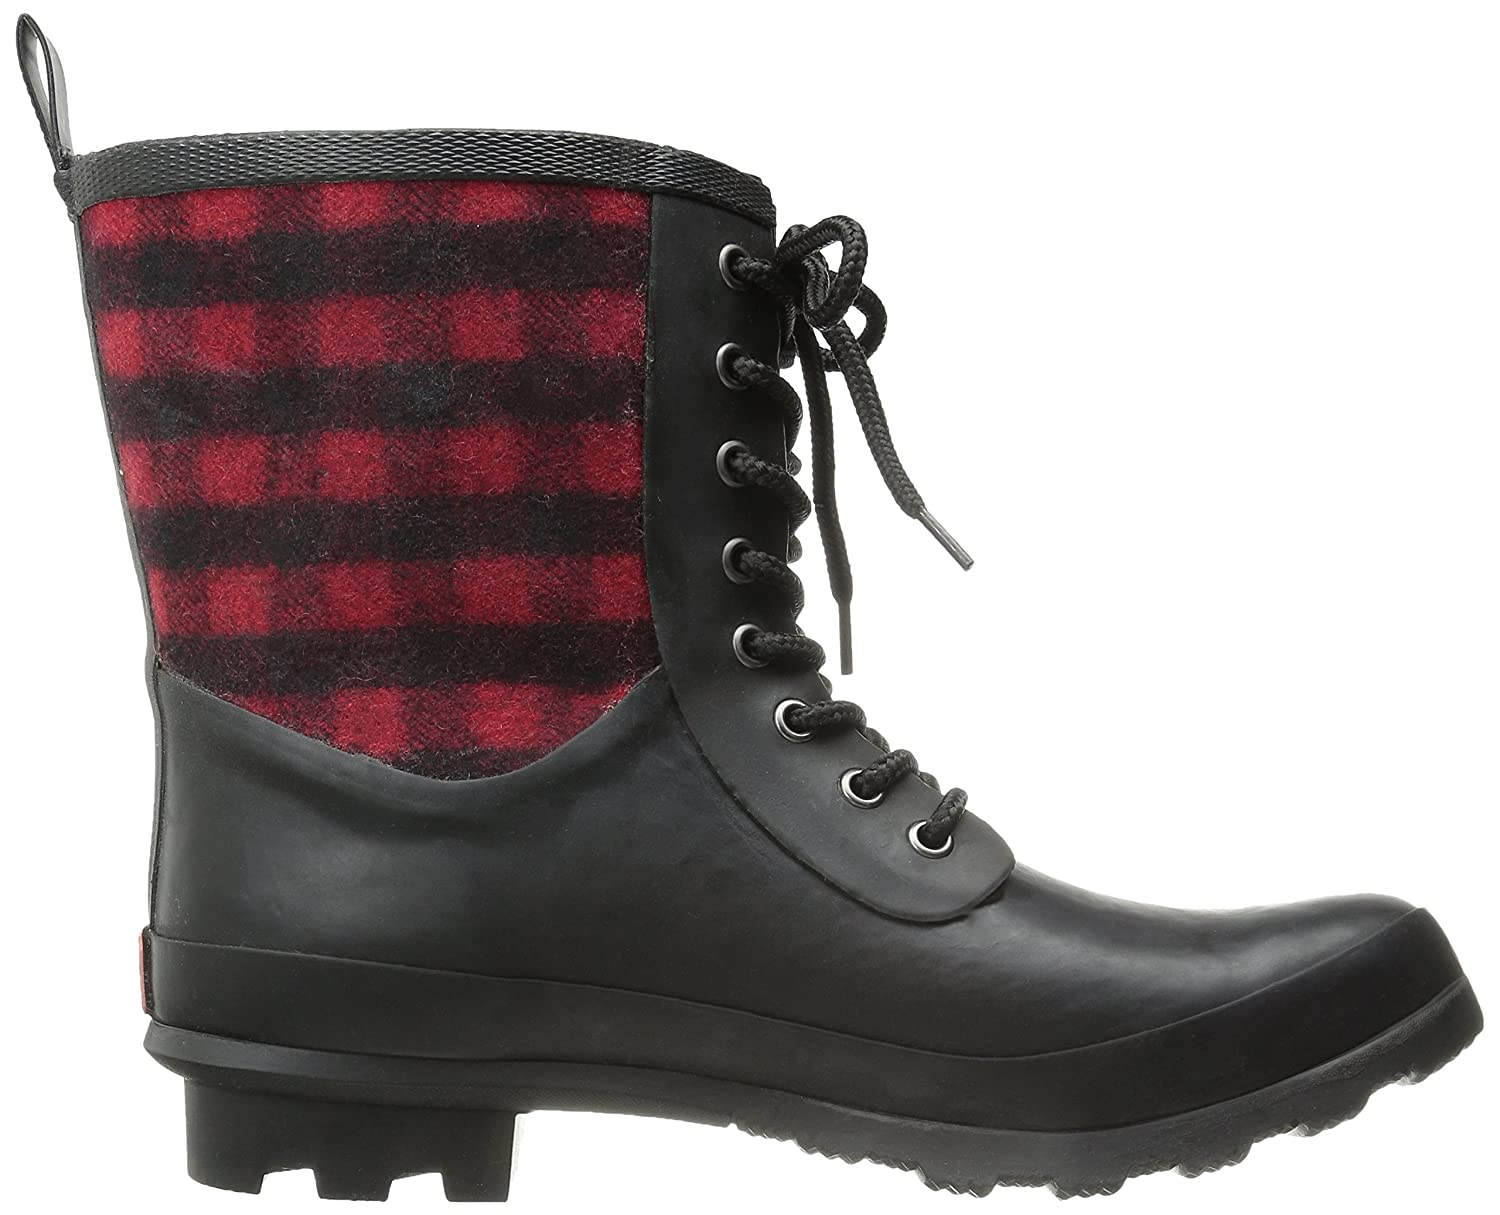 Cara Plaid Rain Boot Chooka Oc9jrxV